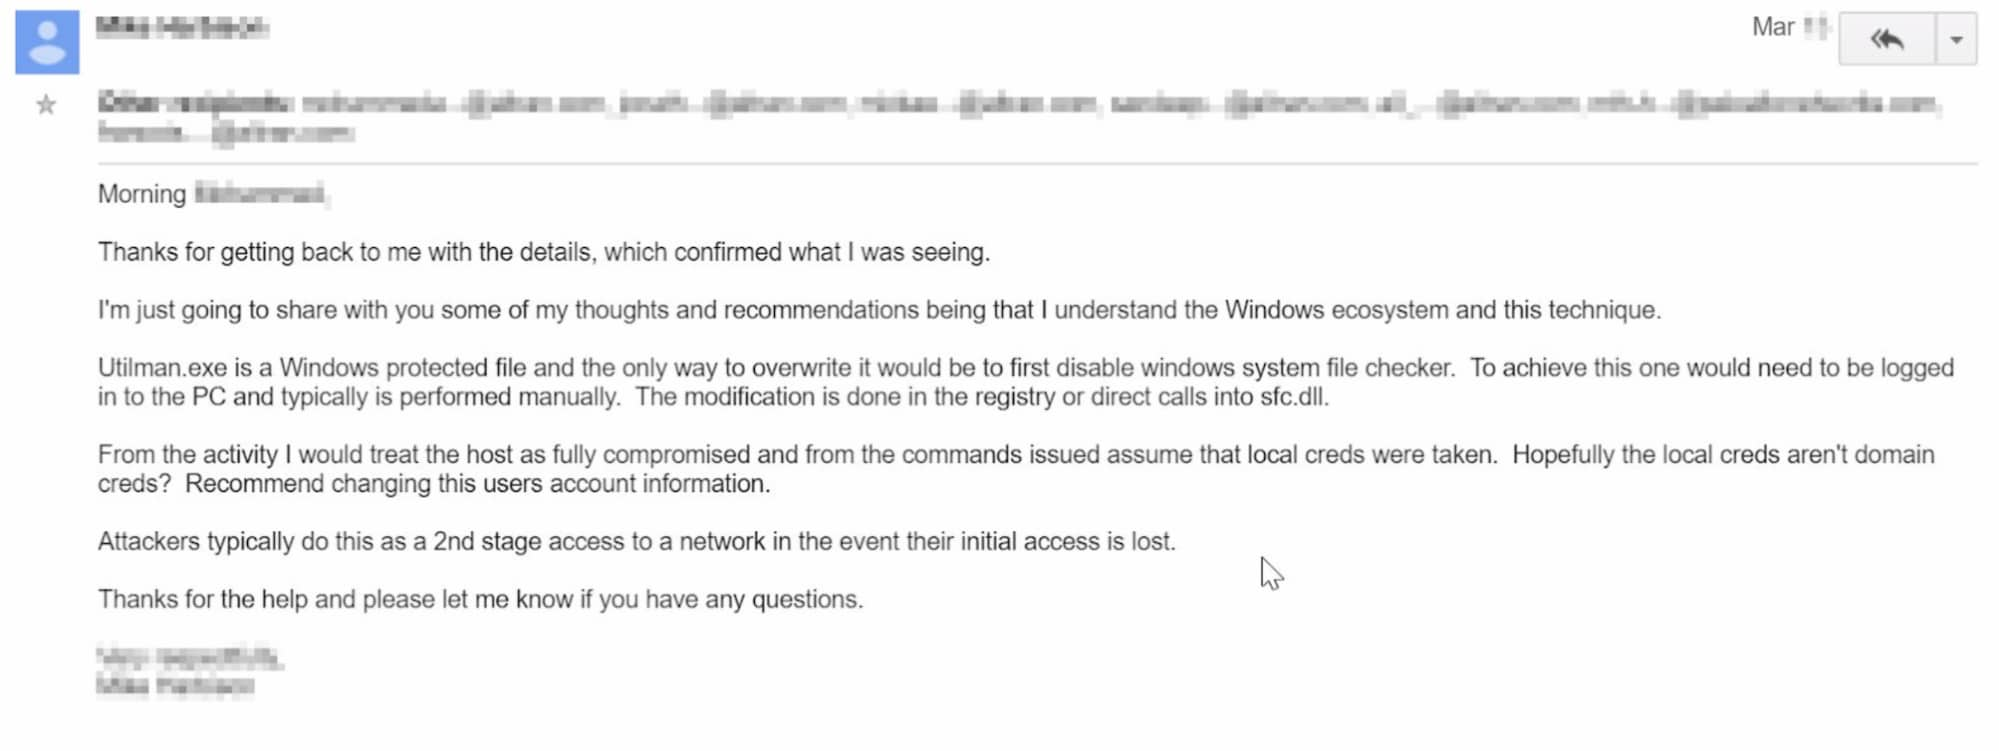 This screenshot of an email reads: Thanks for getting back to me with the details, which confirmed what I was seeing. I'm just going to share with you some of my thoughts and recommendations being that I understand the Windows ecosystem and the technique. Utilman.exe is a Windows protected file and the only way to overwrite it would be to first disable windows system file checker. To achieve this one would need to be logged in ot the PC and typically is performed manually. The modification is done in the registry or direct calls into [obscured]. From the activity I would treat the host as fully compromised and from the commands issued assume that local creds were taken. Hopefully the local creds aren't domain creds? Recommend changing the users account information. Attackers typically do this as a 2nd stage access to a network in the event their initial access is lost. Thanks for the help and please let me know if you have any questions. [Name obscured]